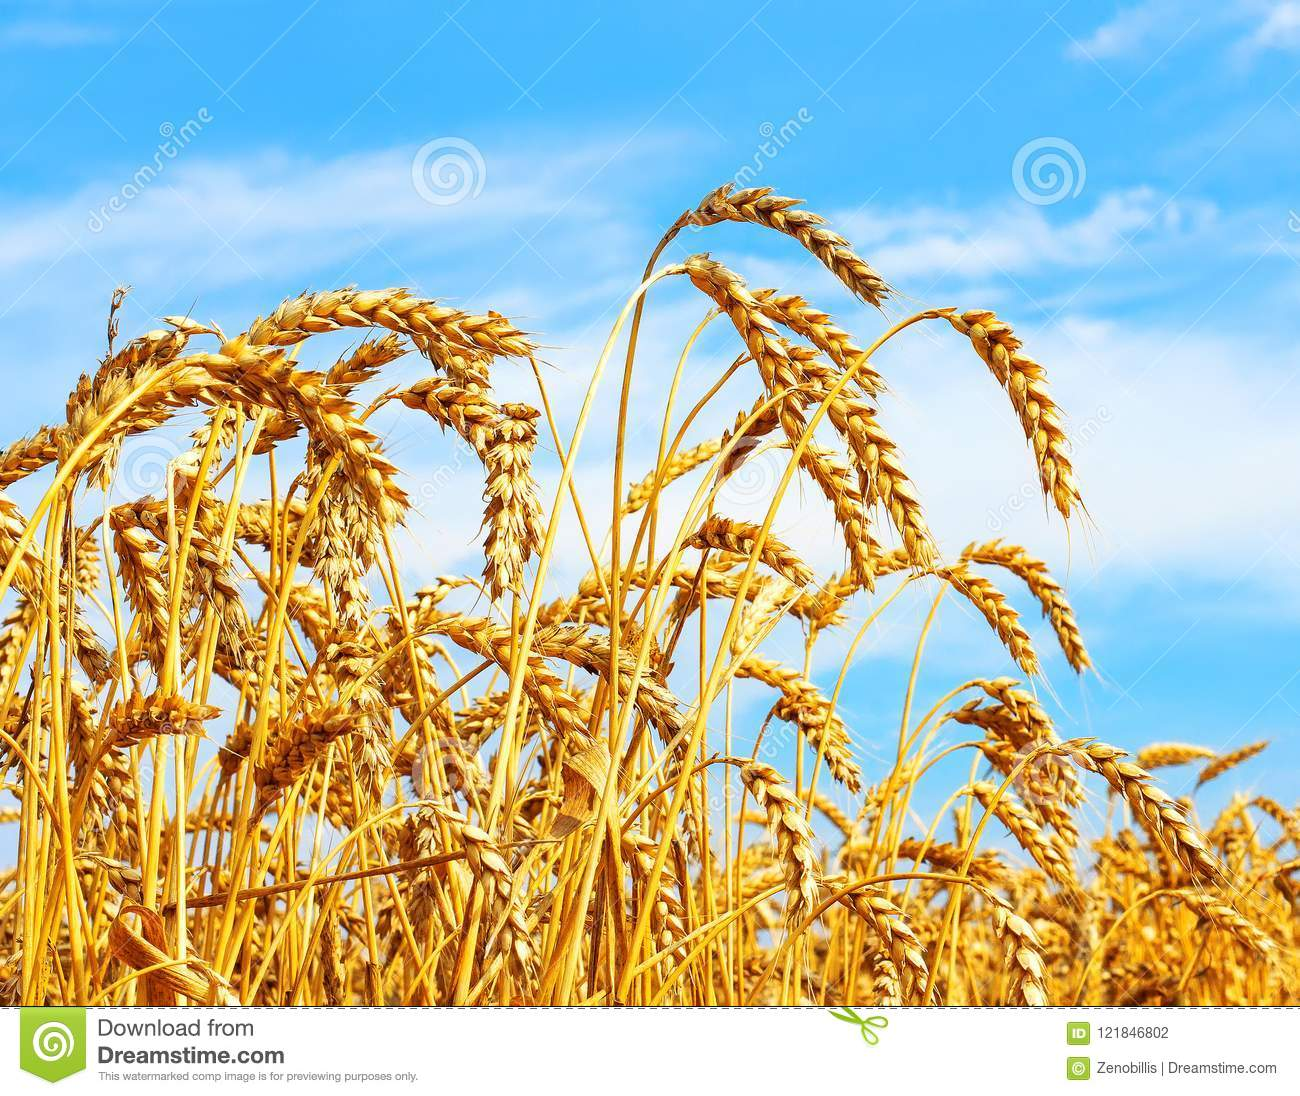 Ripe ears of wheat in field during harvest. Rural agriculture concept